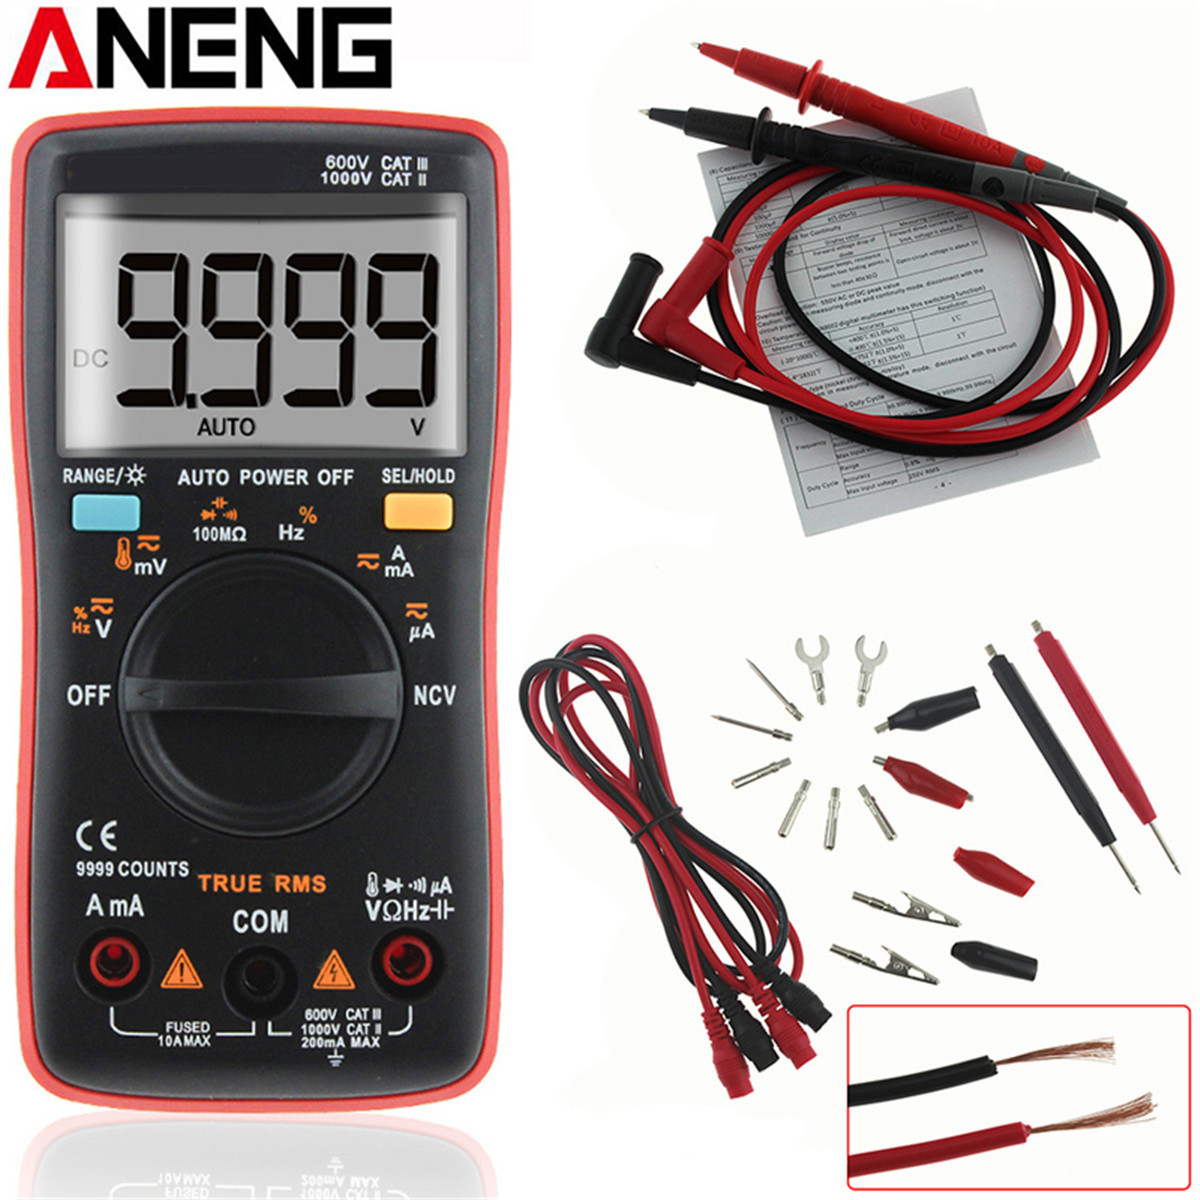 ANENG AN8009 Auto Range Digital Multimeter 9999 Counts Backlight AC/DC Ammeter Voltmeter Ohm Transistor Tester Multi Meter aneng an8201 pocket size mini digital multimeter backlight ac dc ammeter voltmeter ohm electrical tester portable 1999 counts